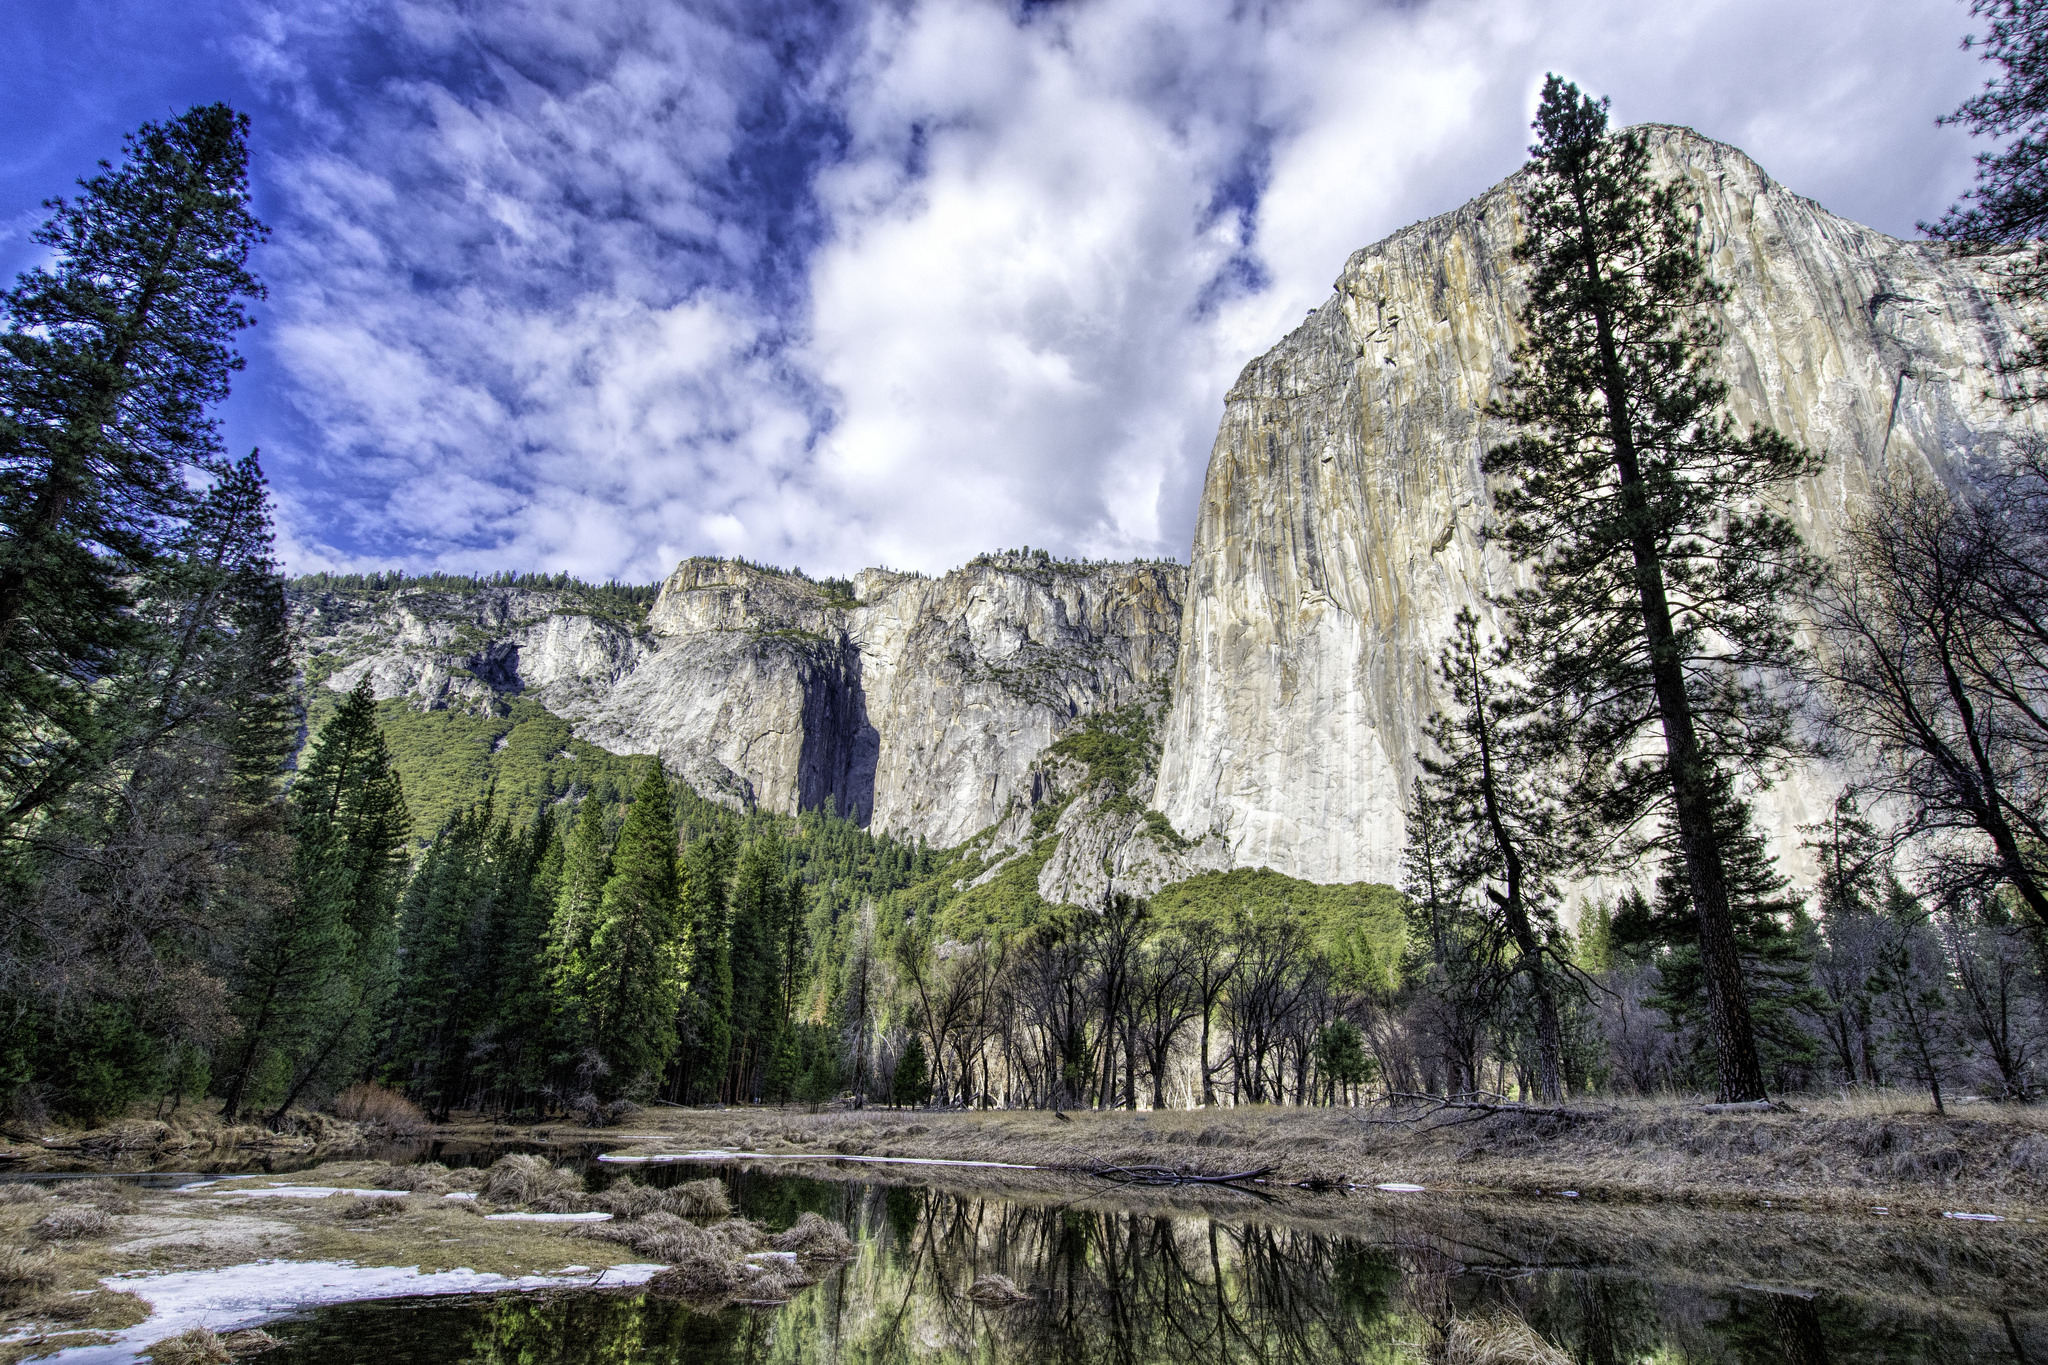 3840x2160 yosemite national park hd 4k hd 4k wallpapers - Yosemite national park hd wallpaper ...